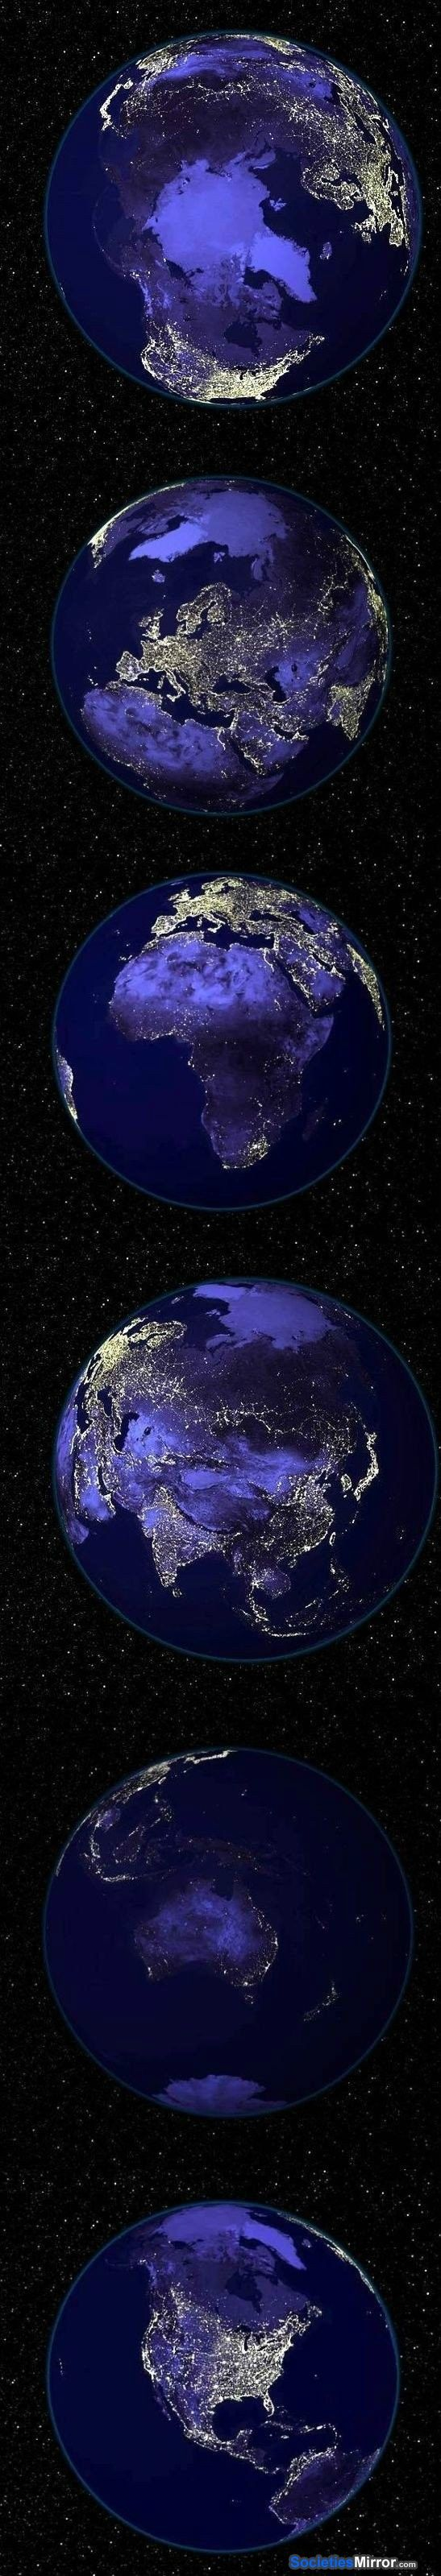 The Earth at Night... notice how much america glows in contrast with canada, europe, and asia... very interesting :)